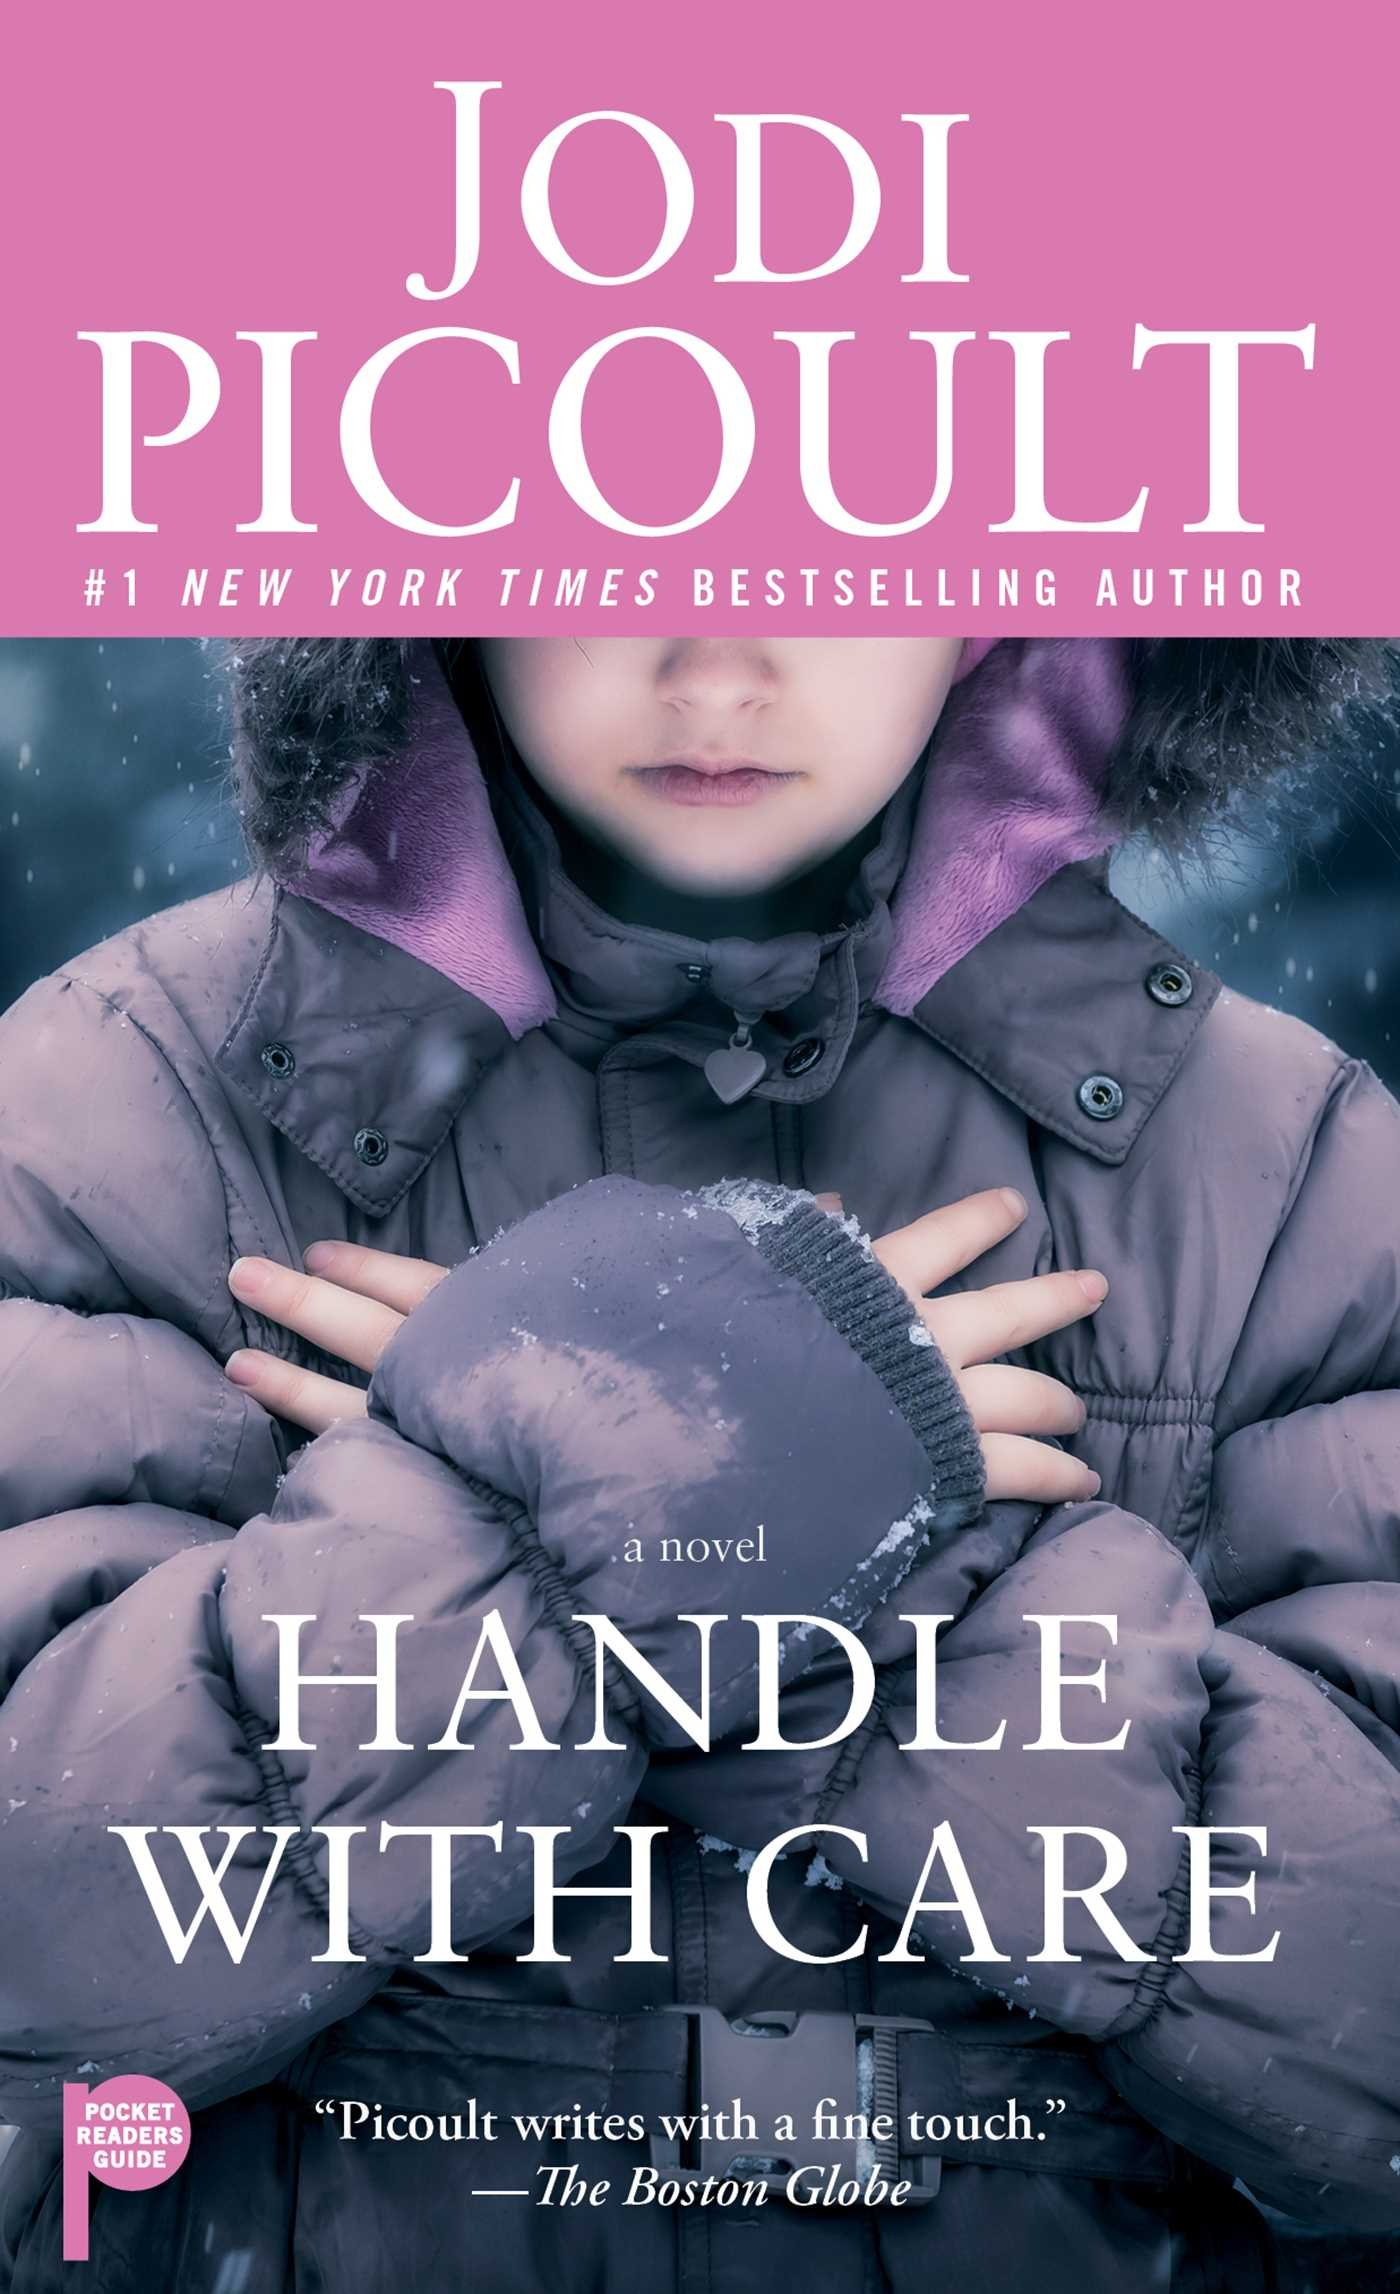 Amazon.com: Handle with Care: A Novel (9781501106149): Jodi Picoult: Books